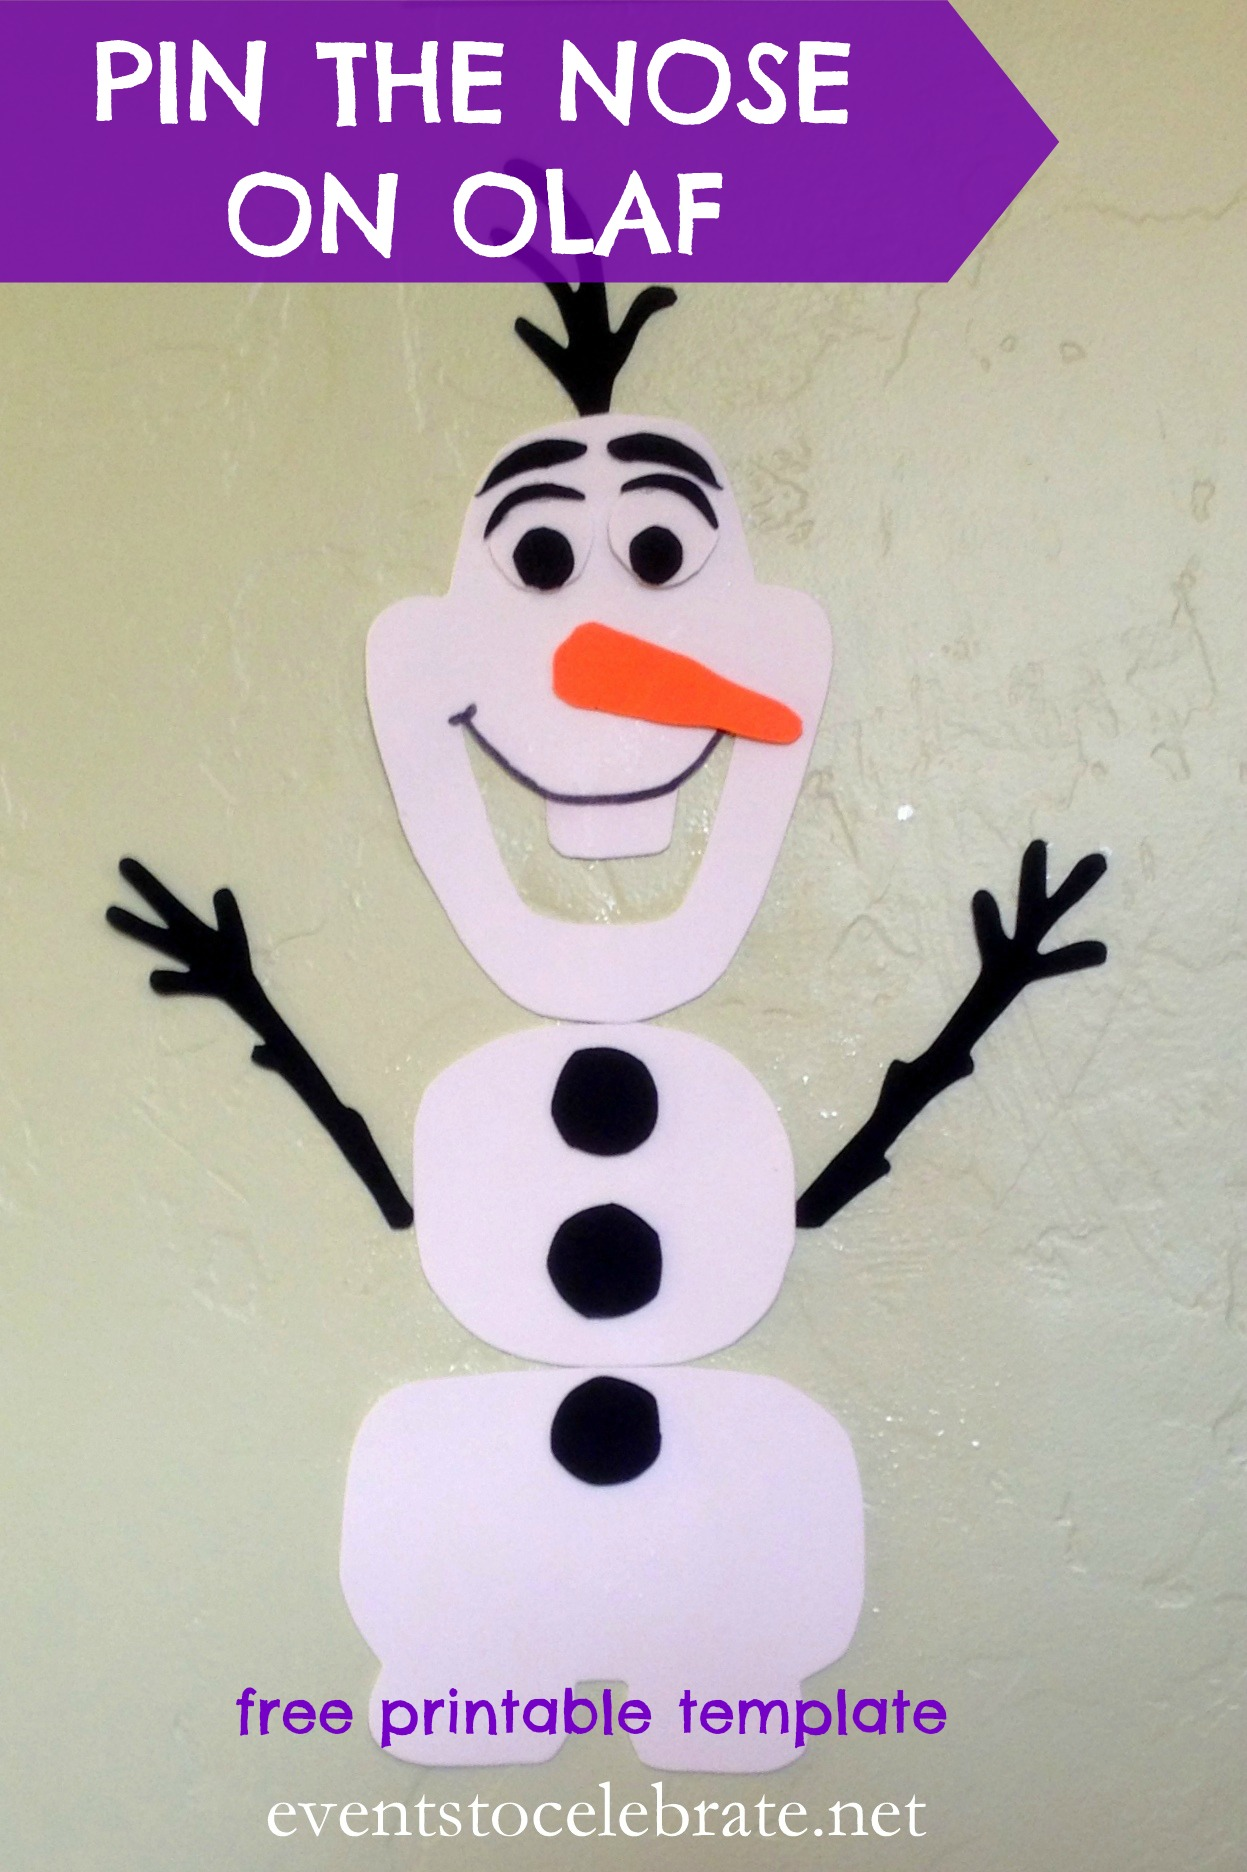 It's just a photo of Ridiculous Free Olaf Printable